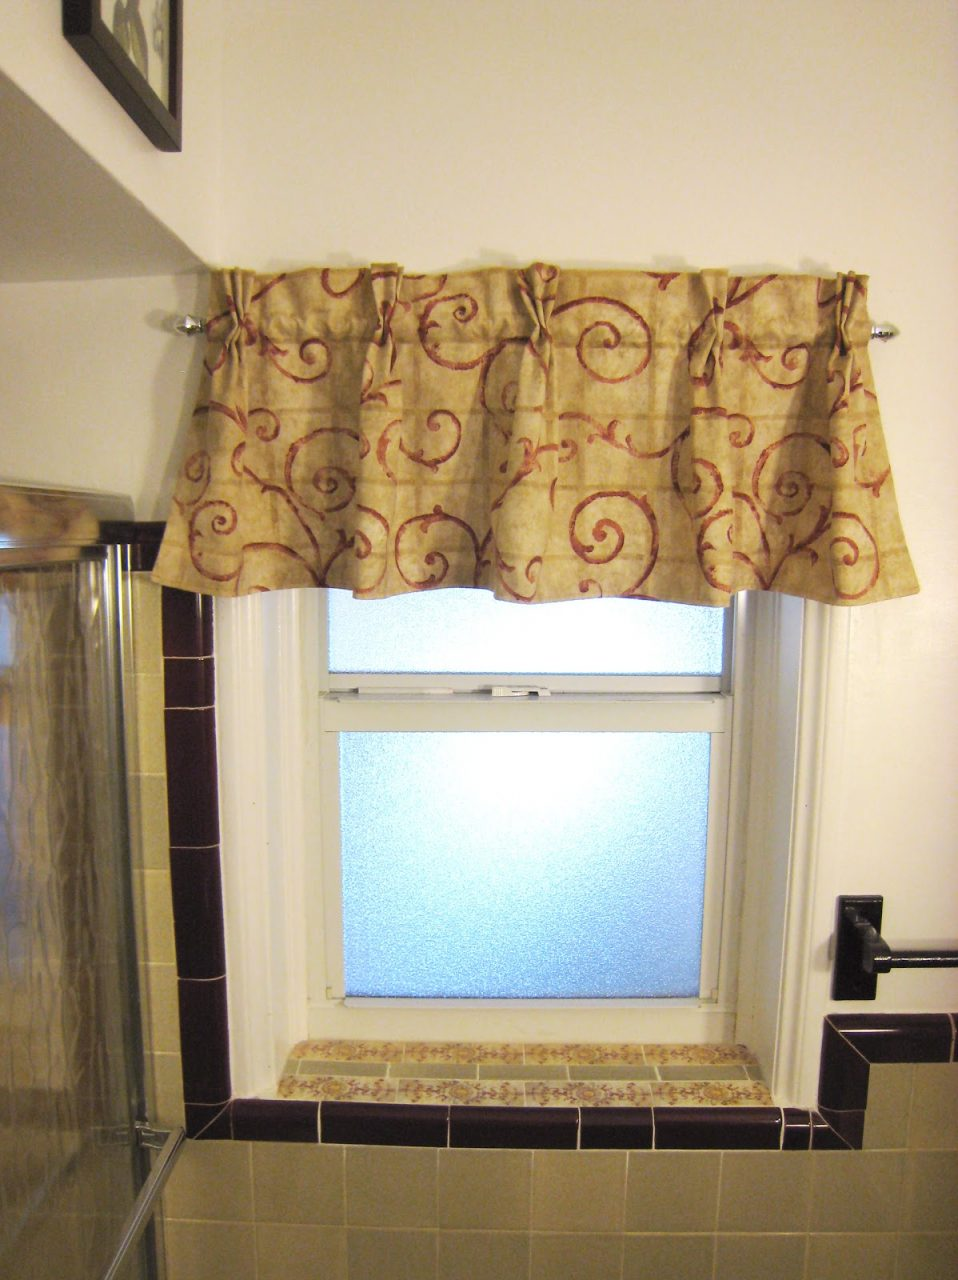 The Reformatory Bathroom Window Valance Bathroom Bench Ideas